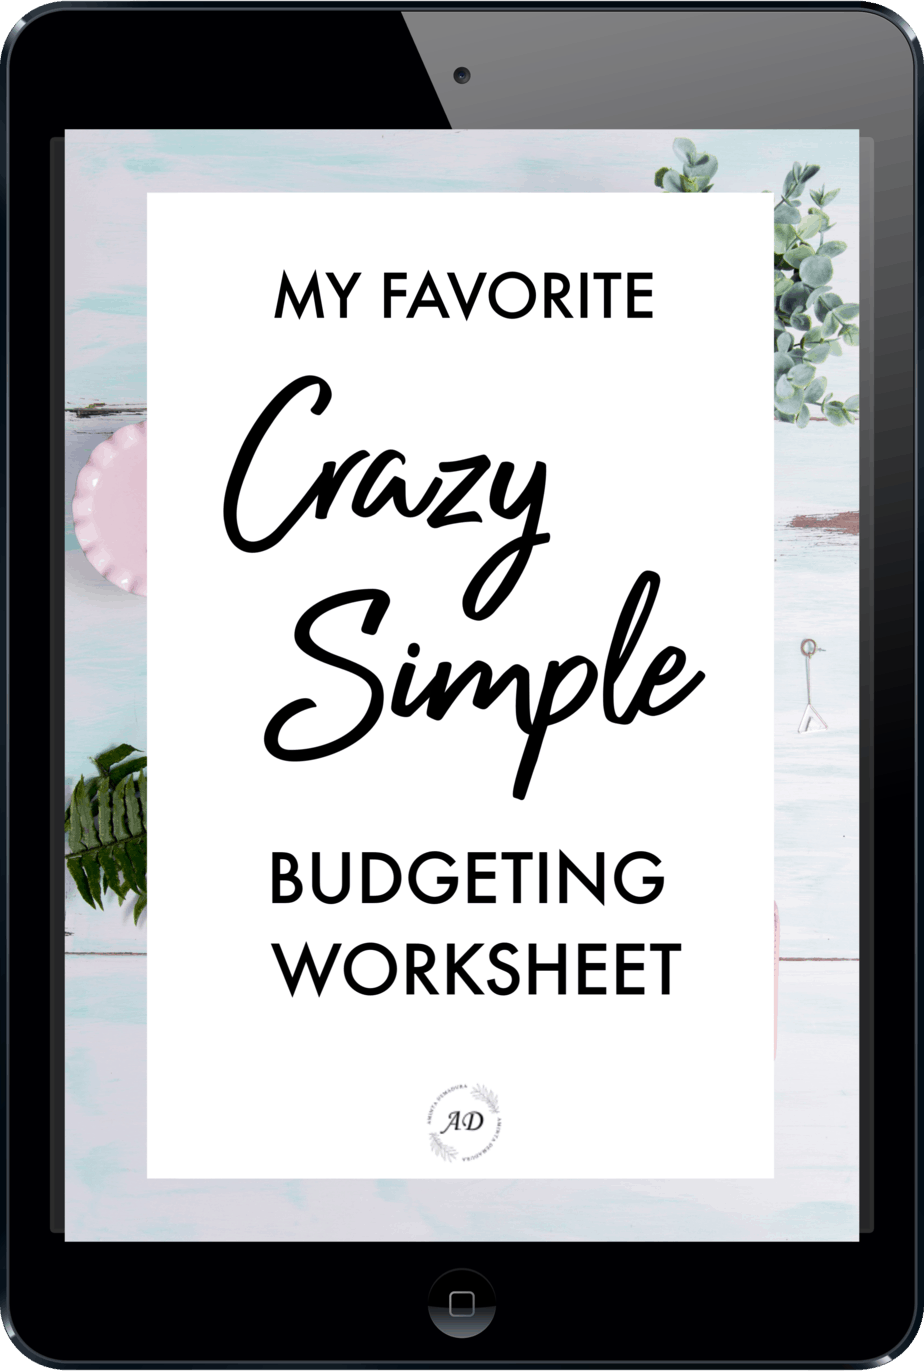 CRAZY simple budgeting worksheet